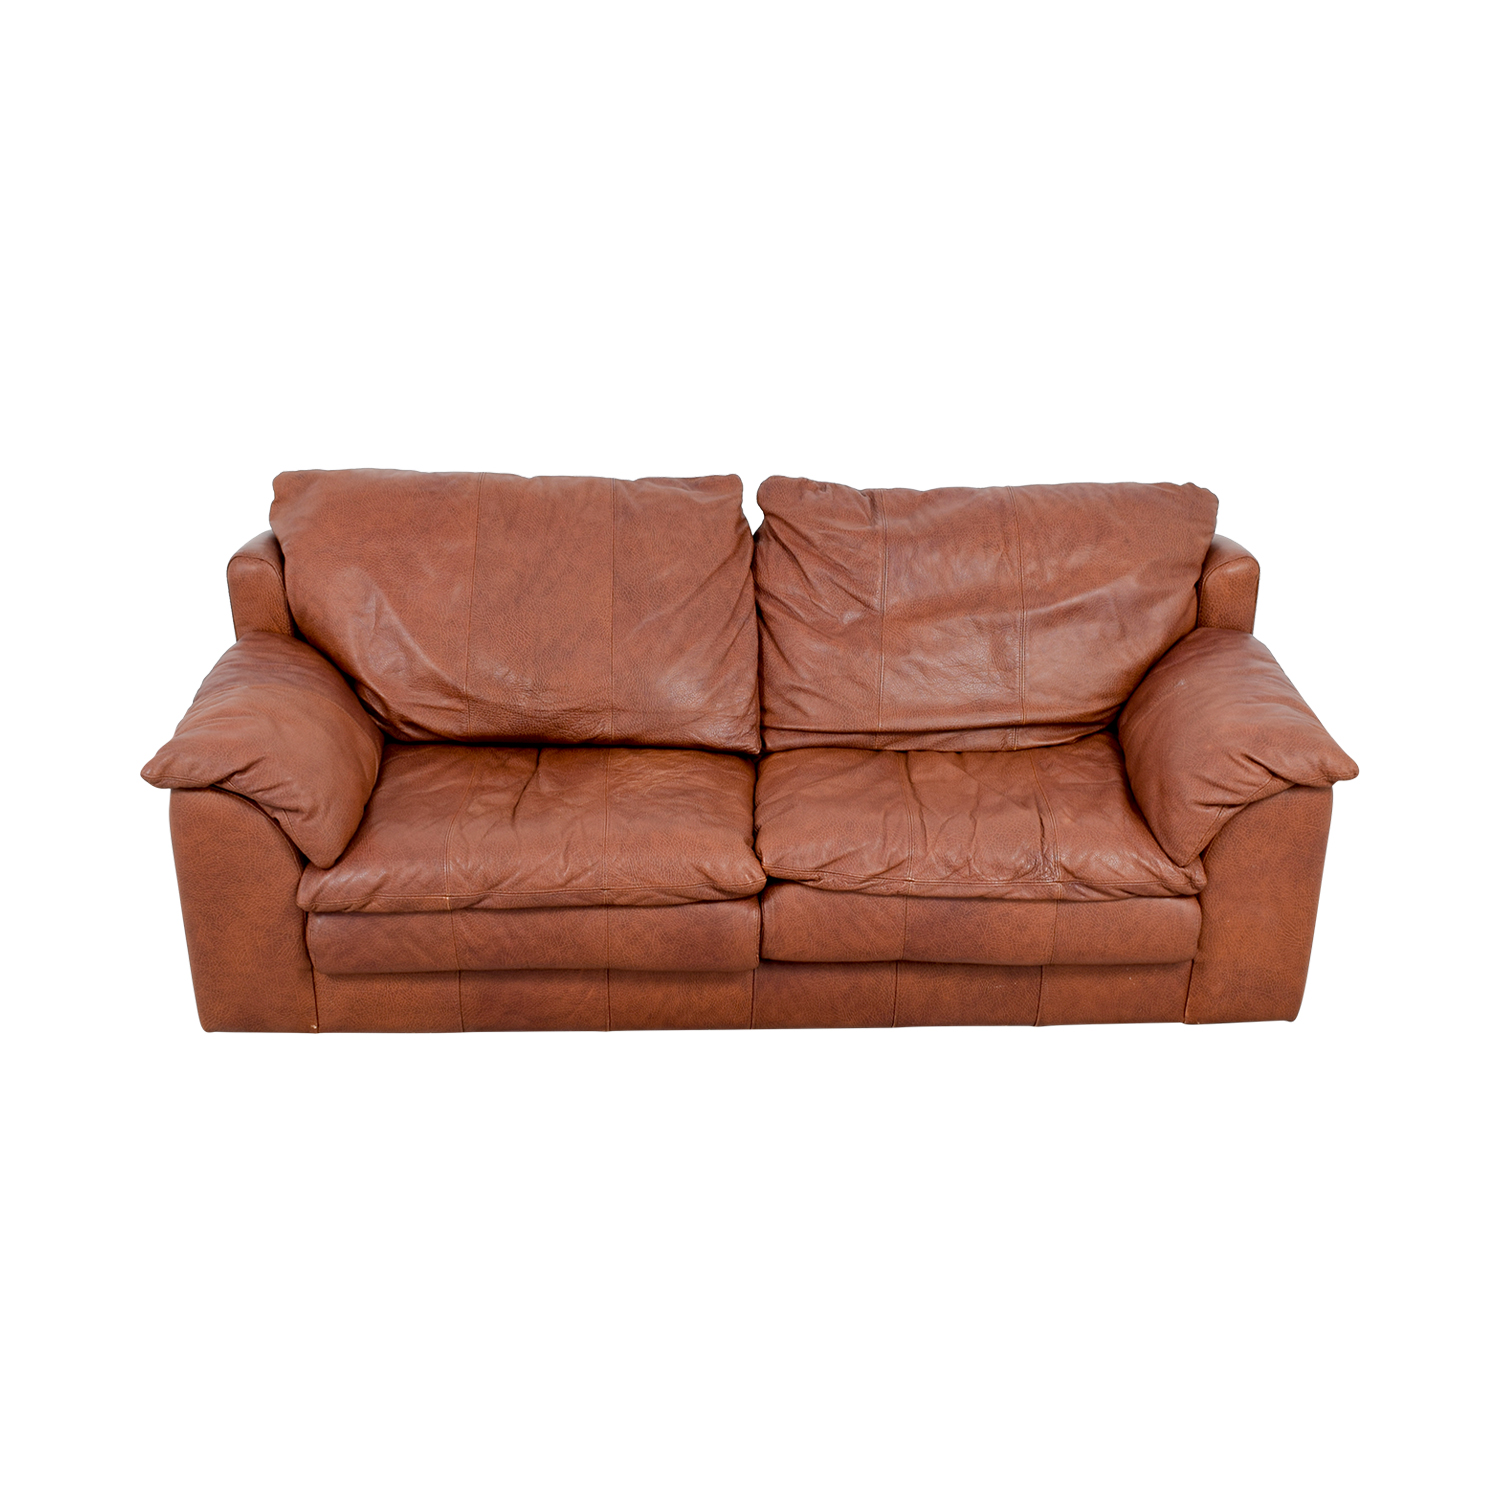 buy Rust Two-Cushion Leather Couch with Pillowed Arms